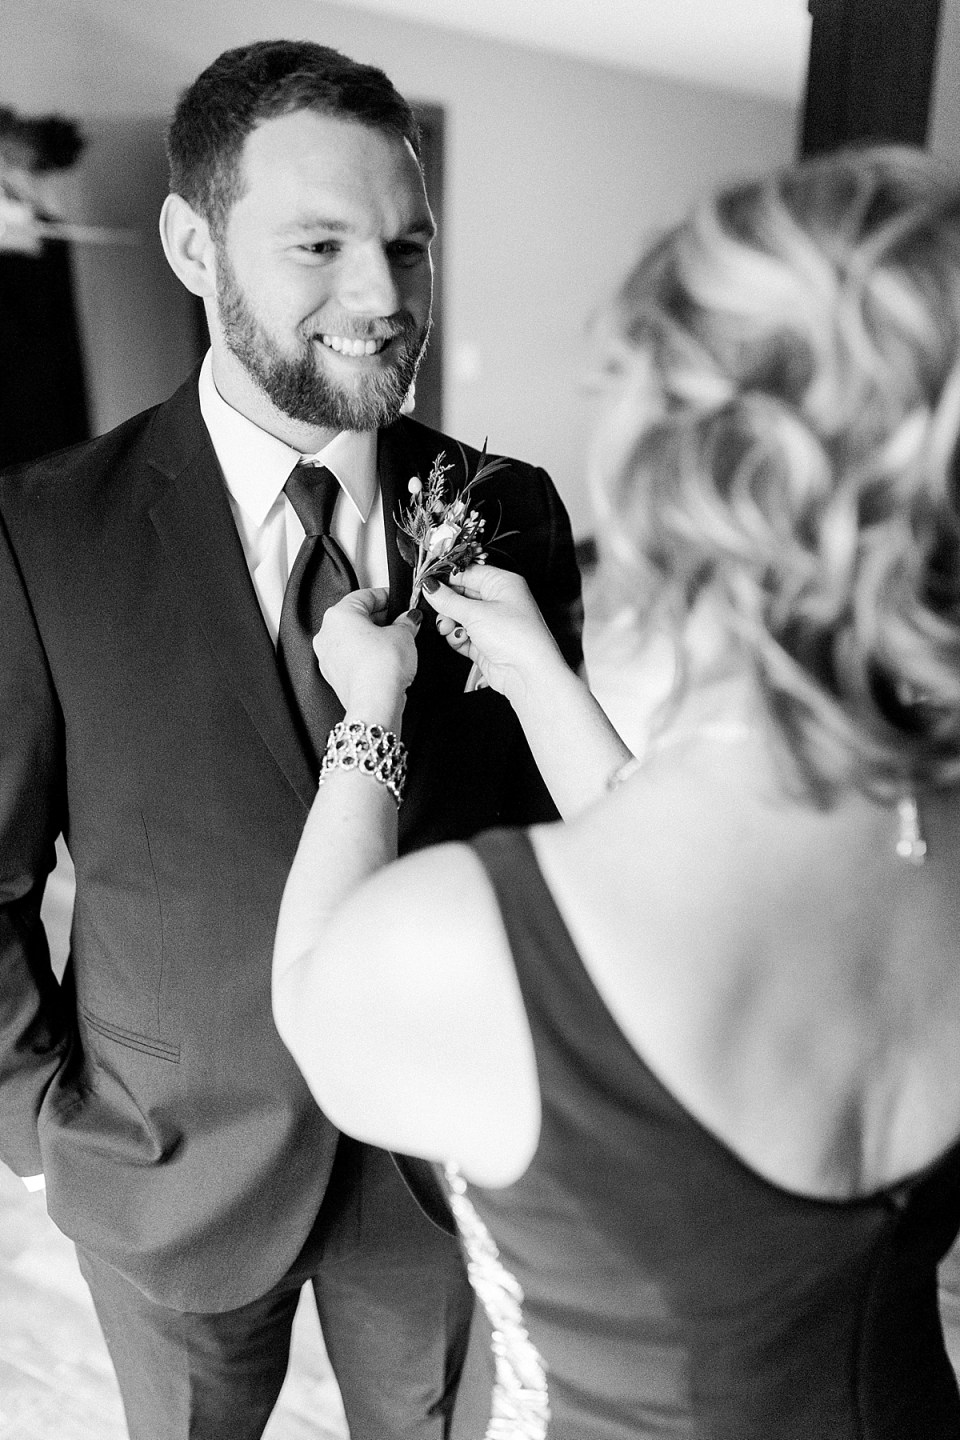 Arielle Peters Photography | Groom putting on boutonniere on wedding day.